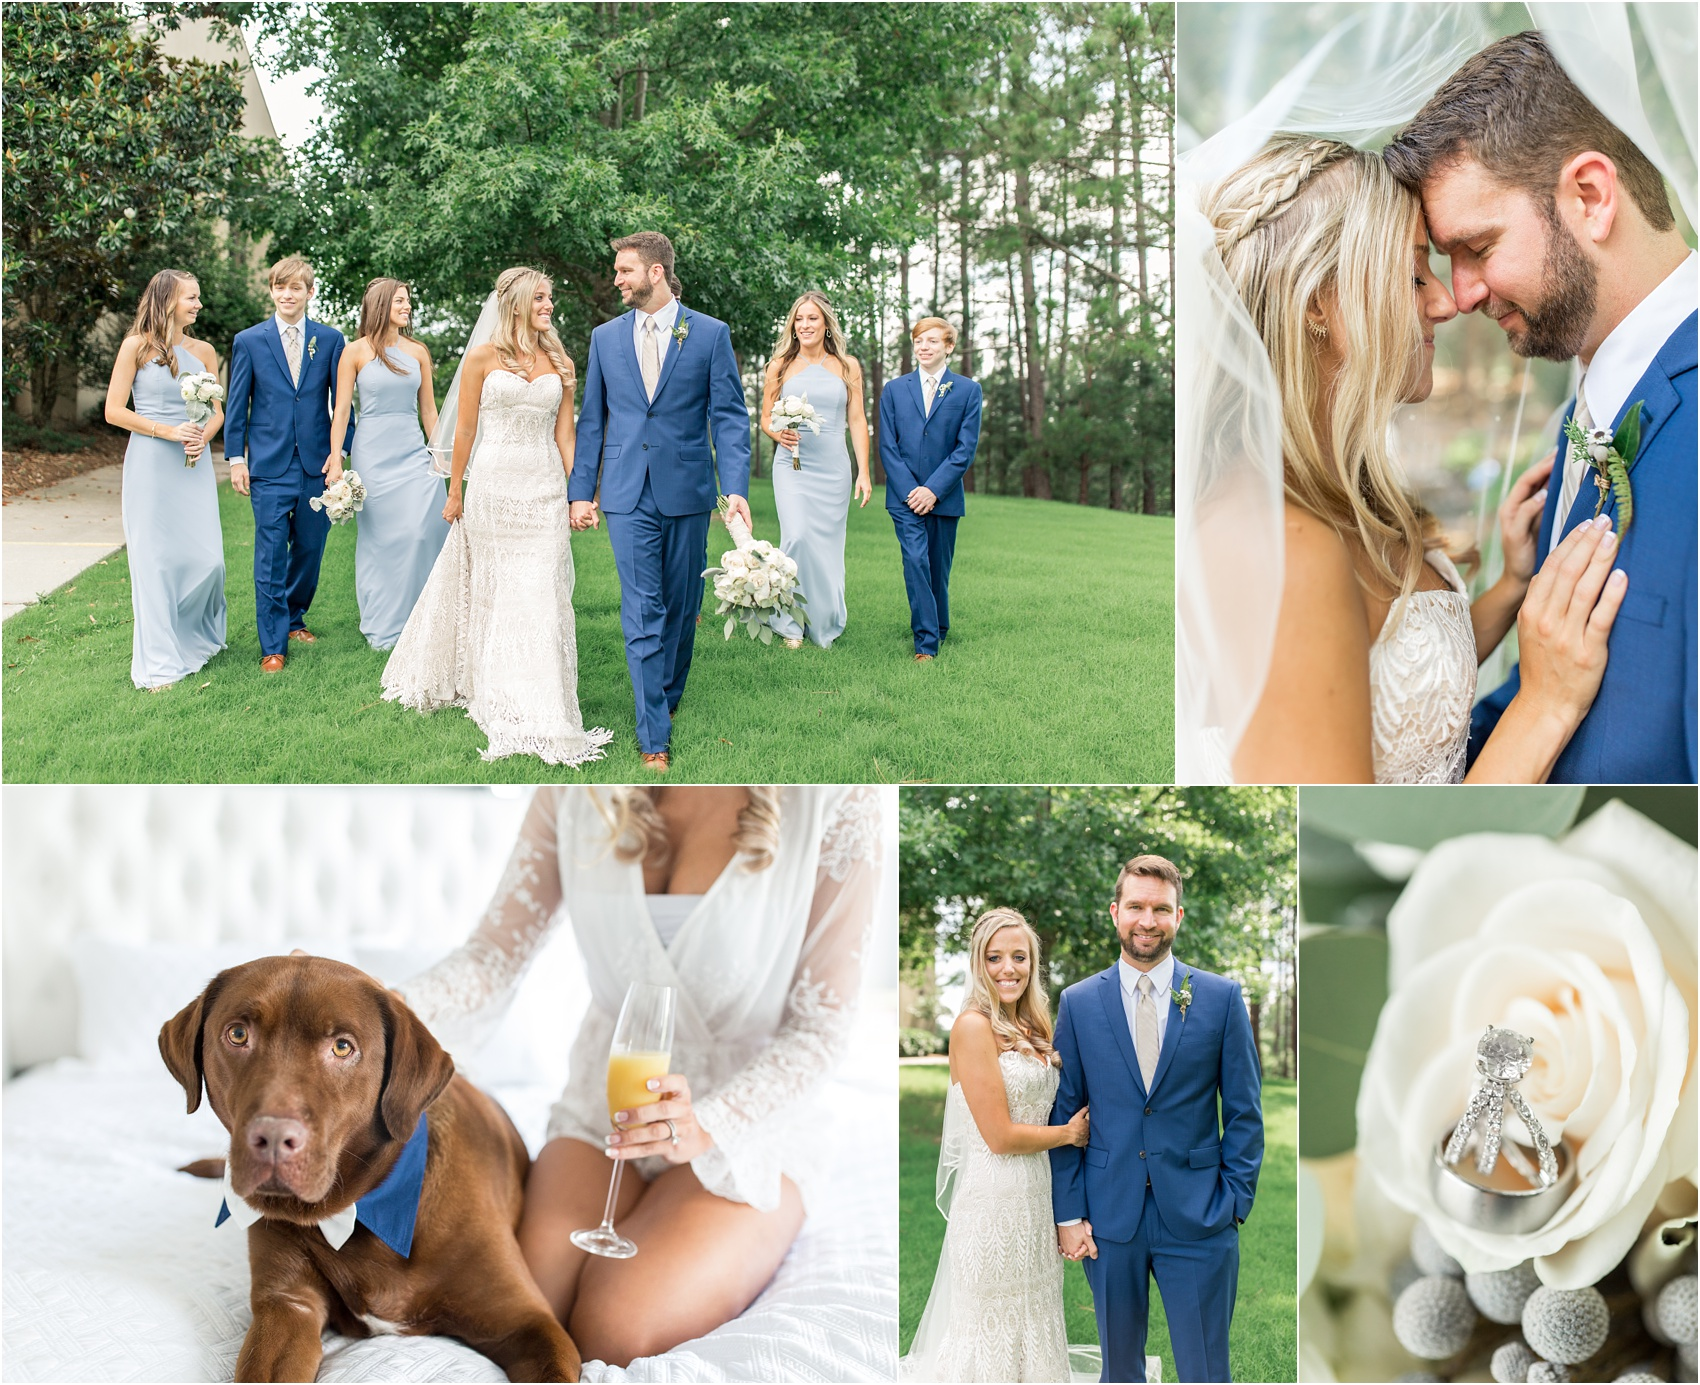 Savannah Eve Photography- Barkie-Wilson Wedding- Sneak Peek-41.jpg